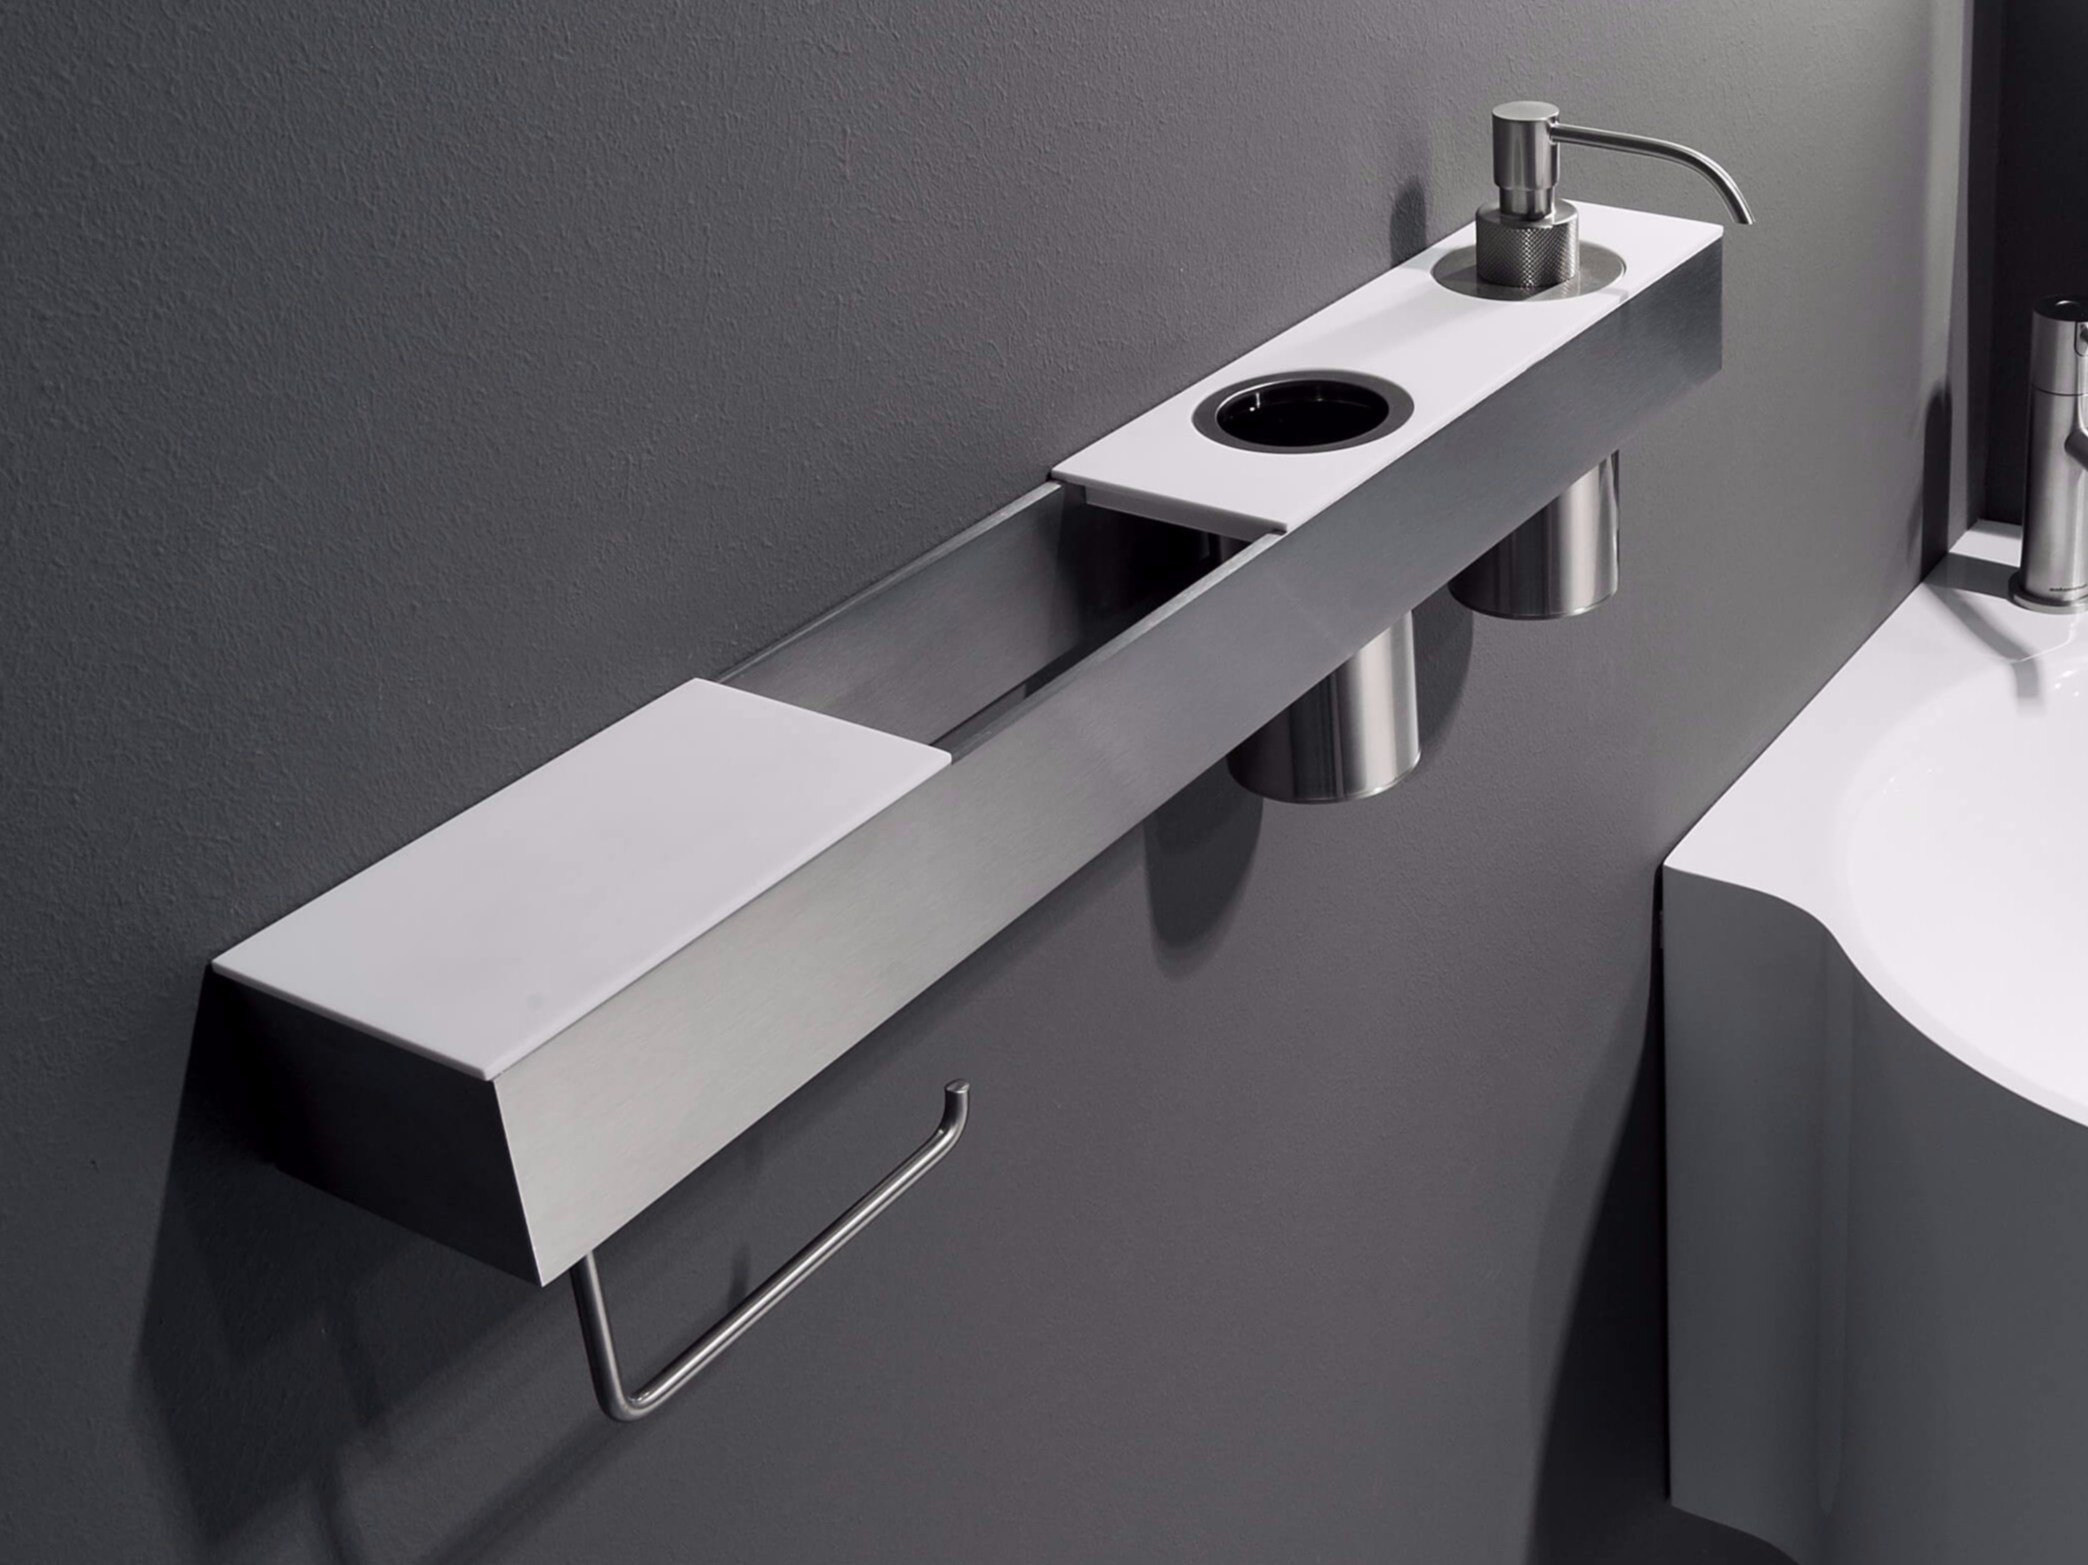 Mensola bagno accessoriata play by antonio lupi design for Accessori bagno di design